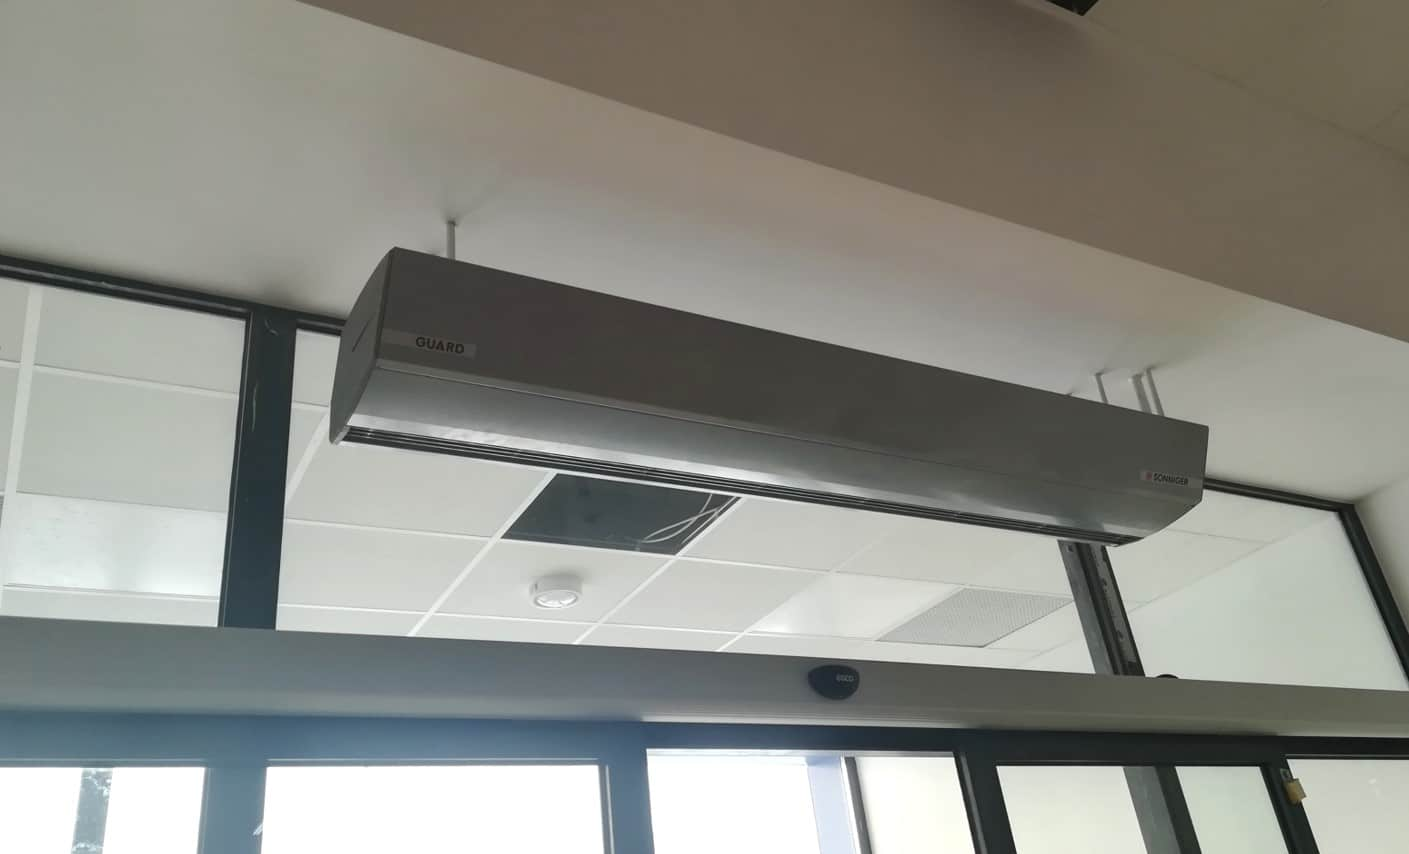 sonniger guard commercial air curtain lphw electric or ambient air